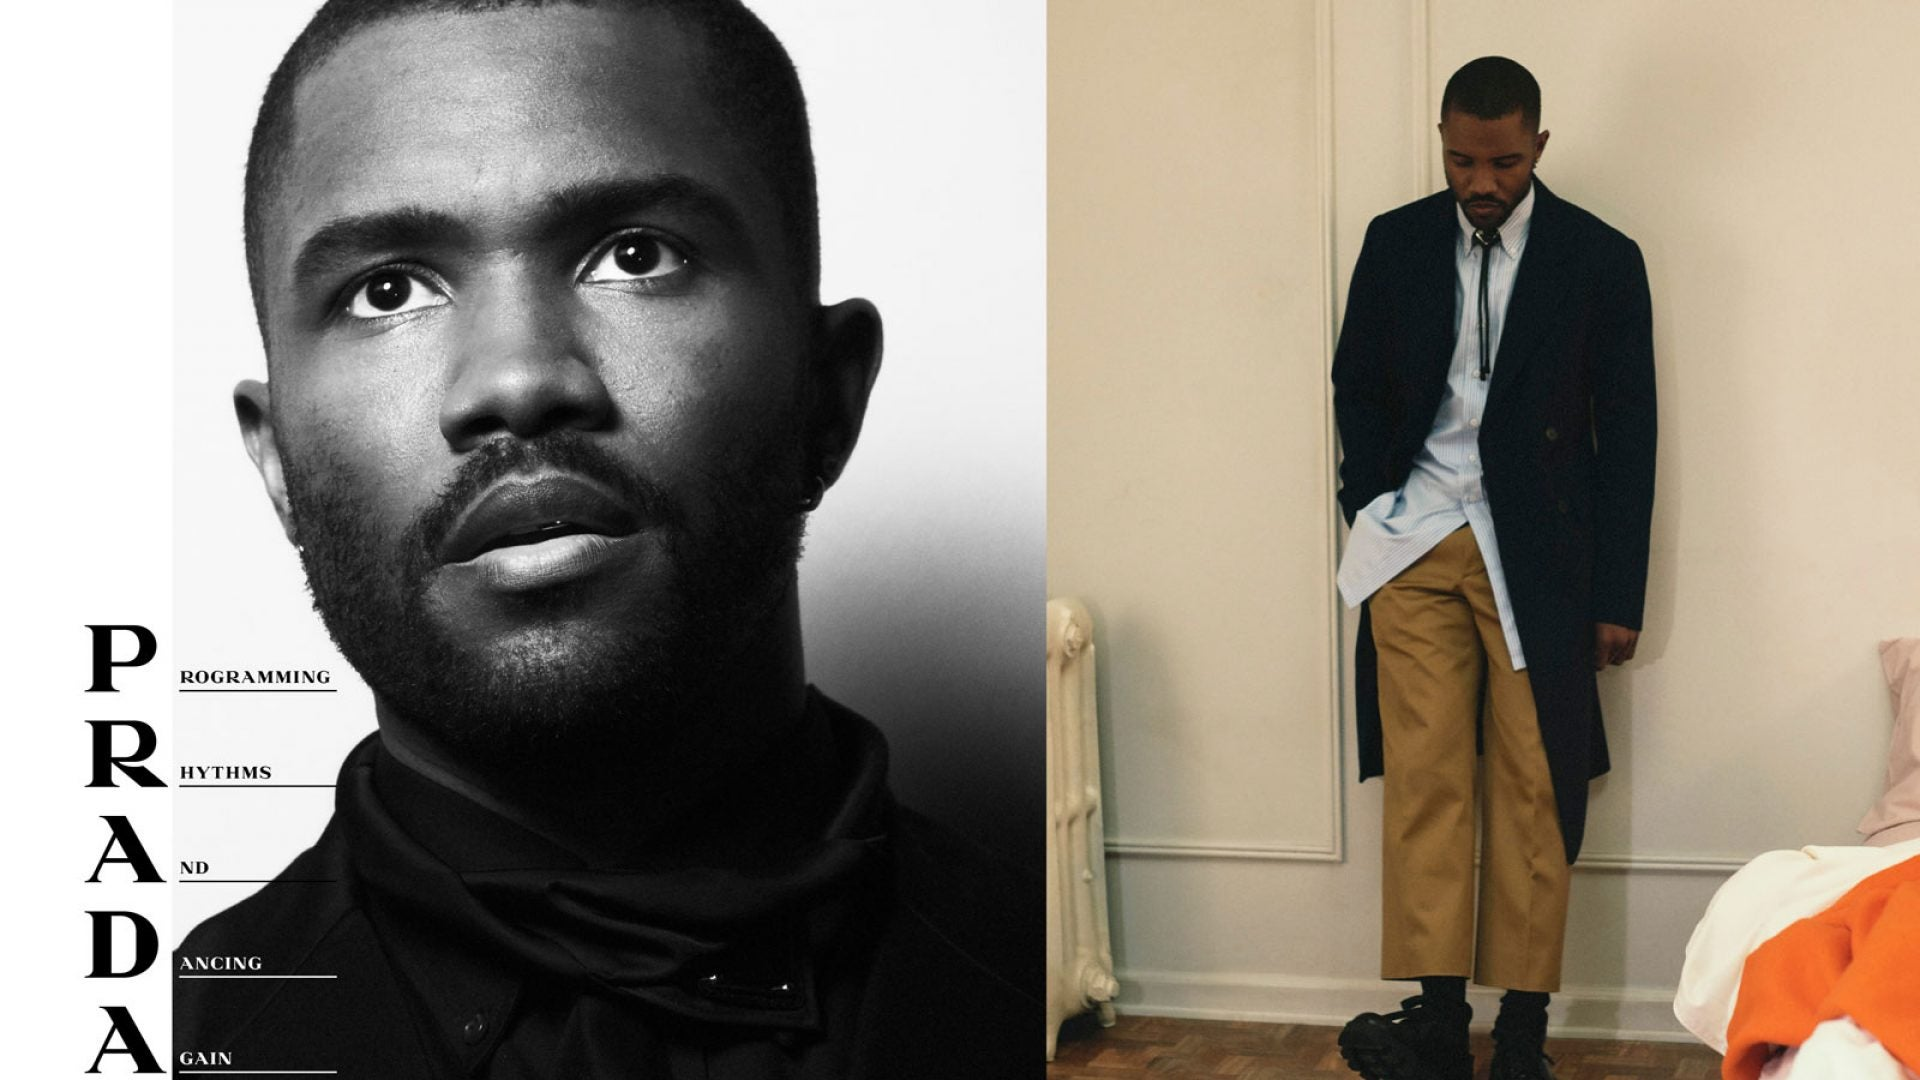 Frank Ocean Is The New Face Of A Prada Campaign